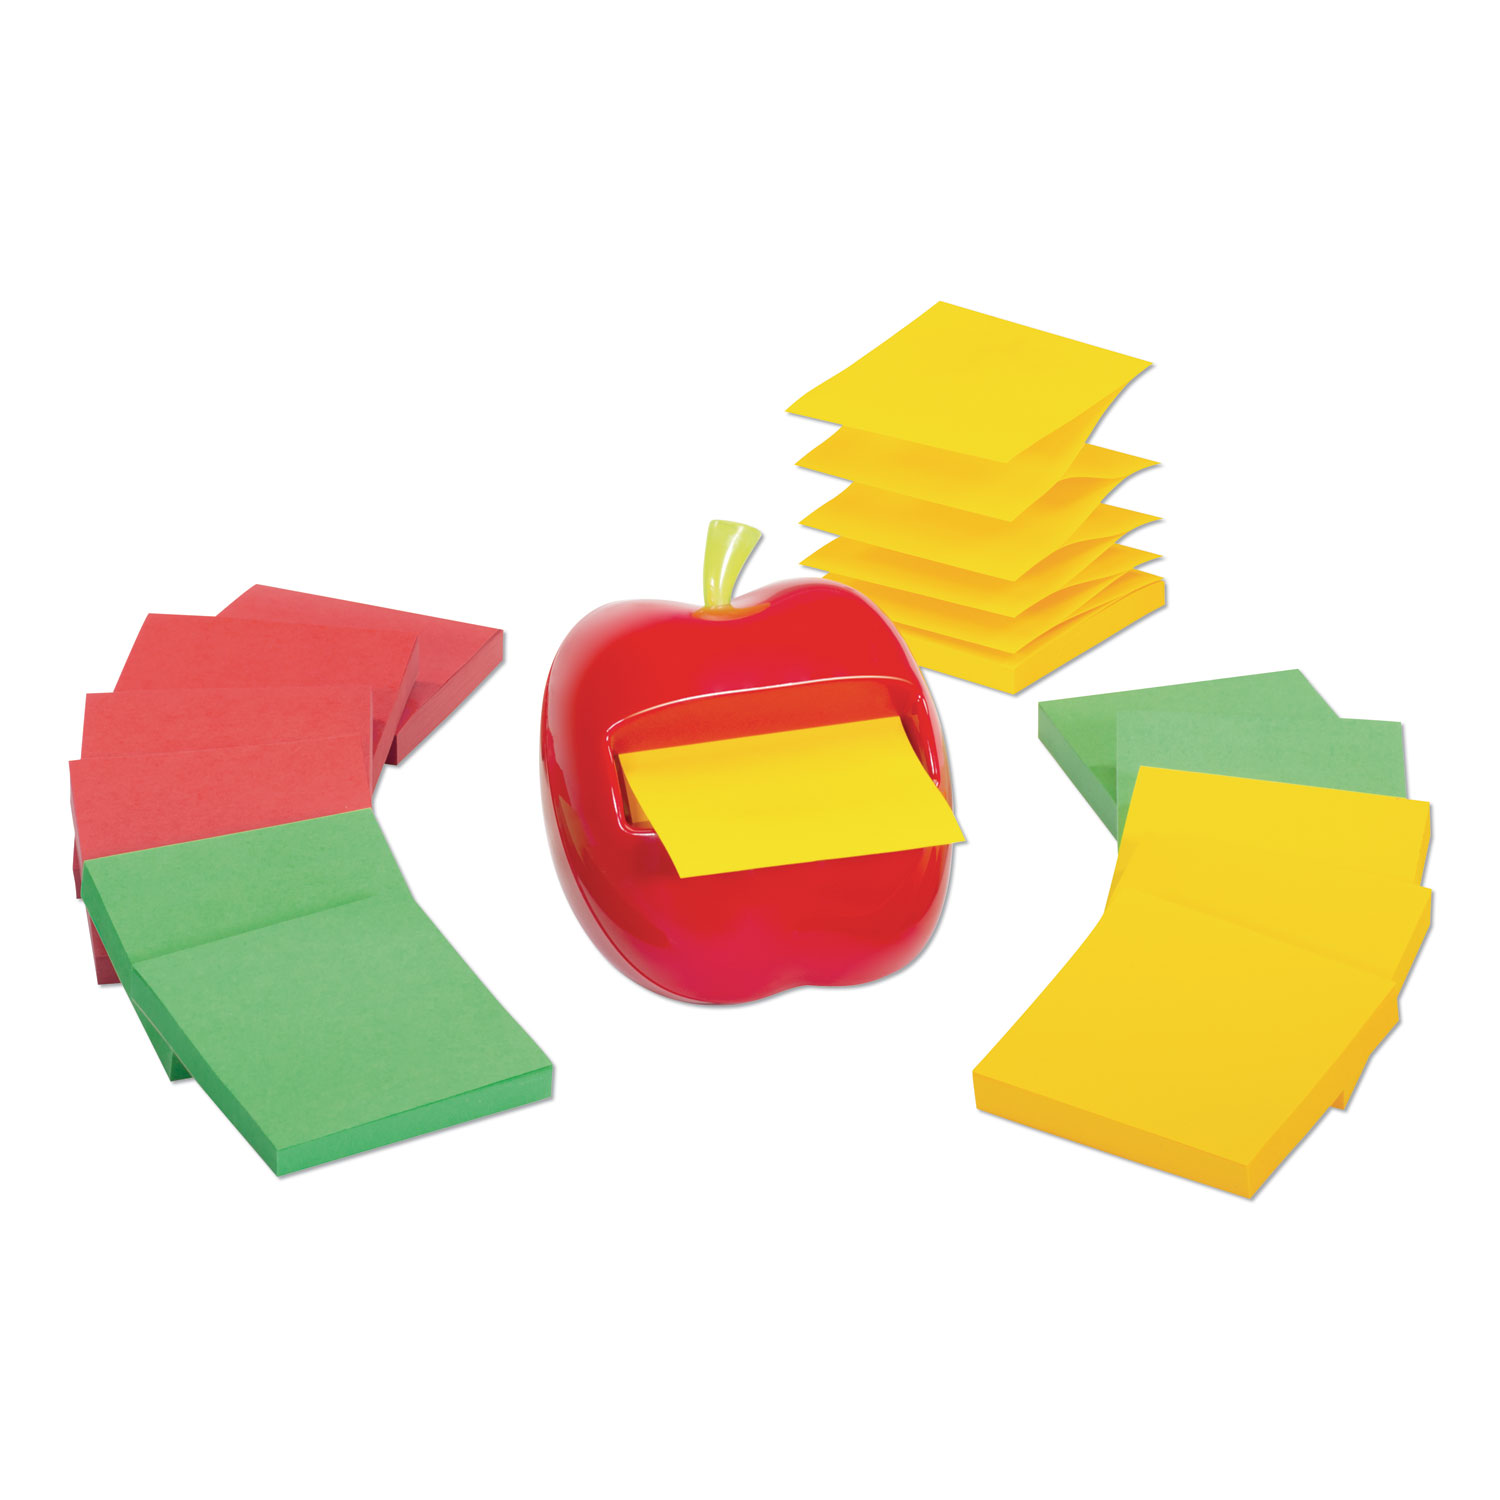 Apple Notes Dispenser Value Pack, 3 x 3 Marrakesh Color Collection Pads, Red/Green, 12 Pads/Pack